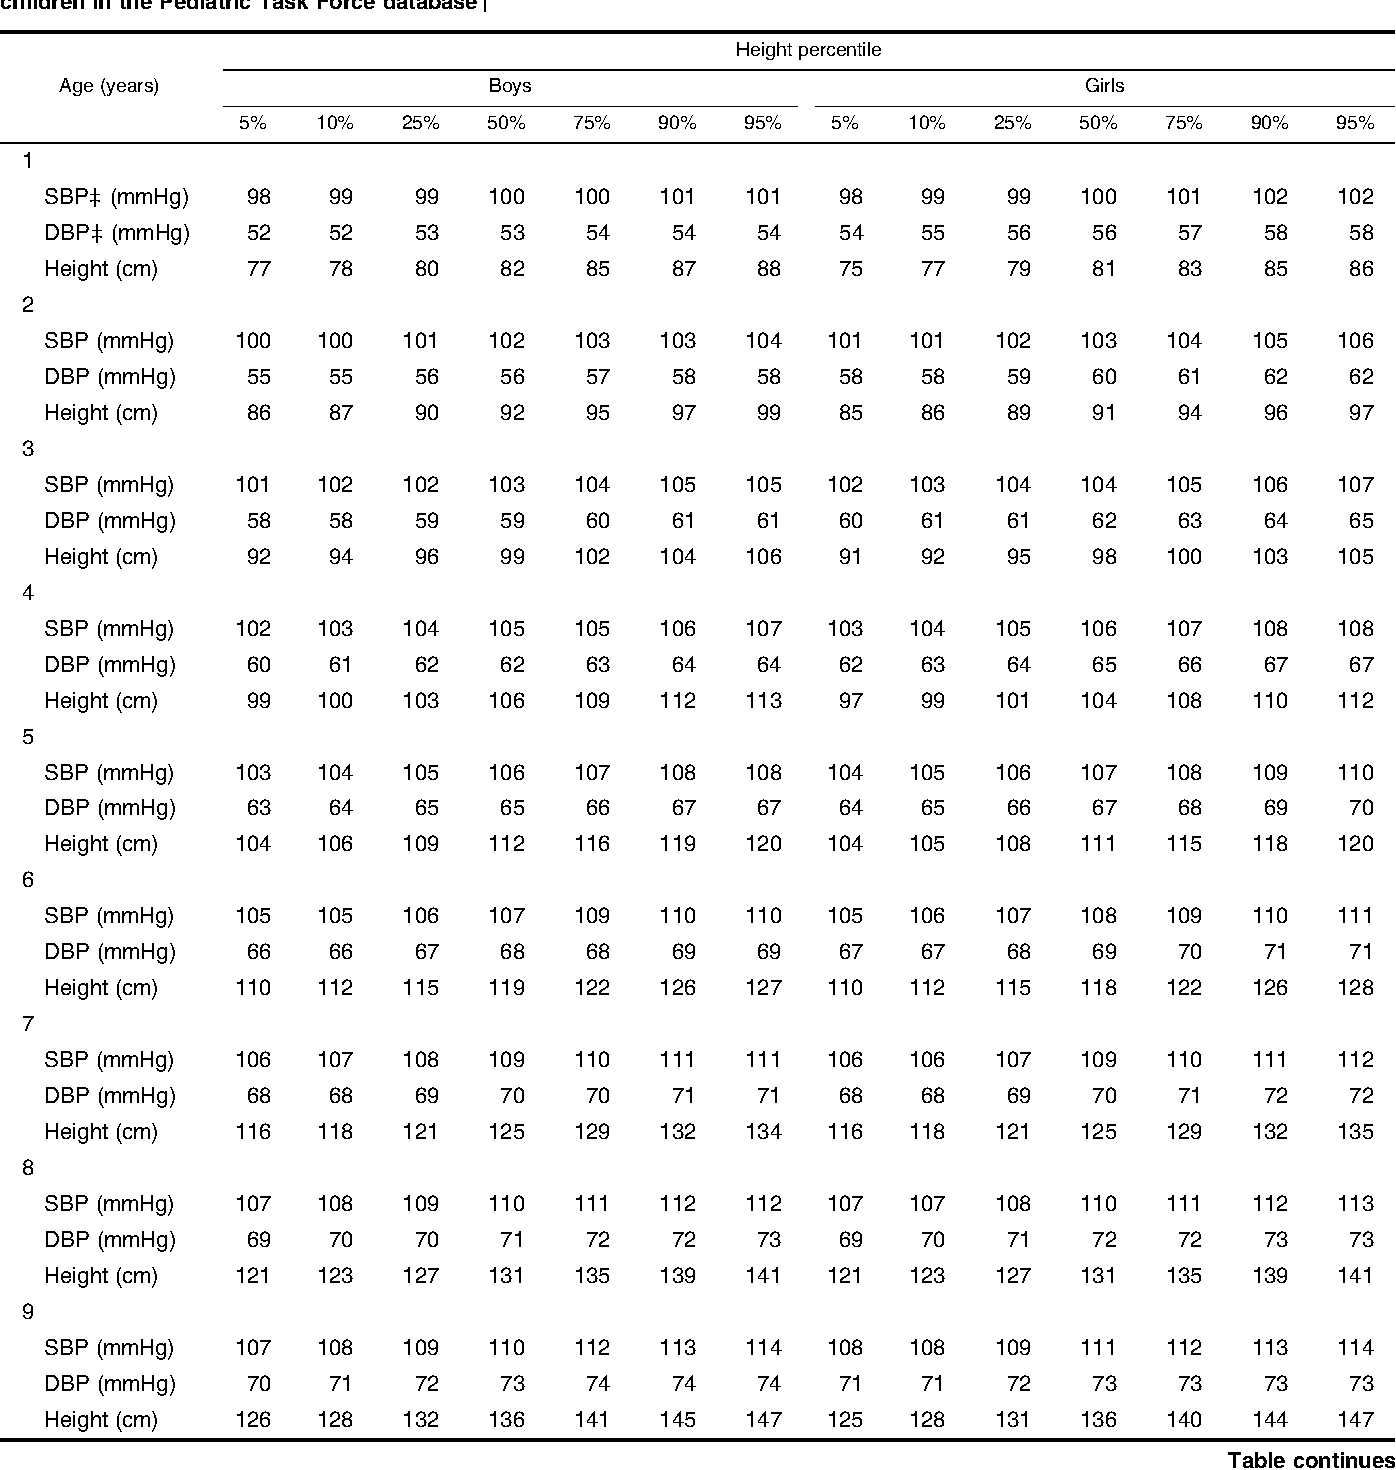 Table 4 from Determination of blood pressure percentiles in